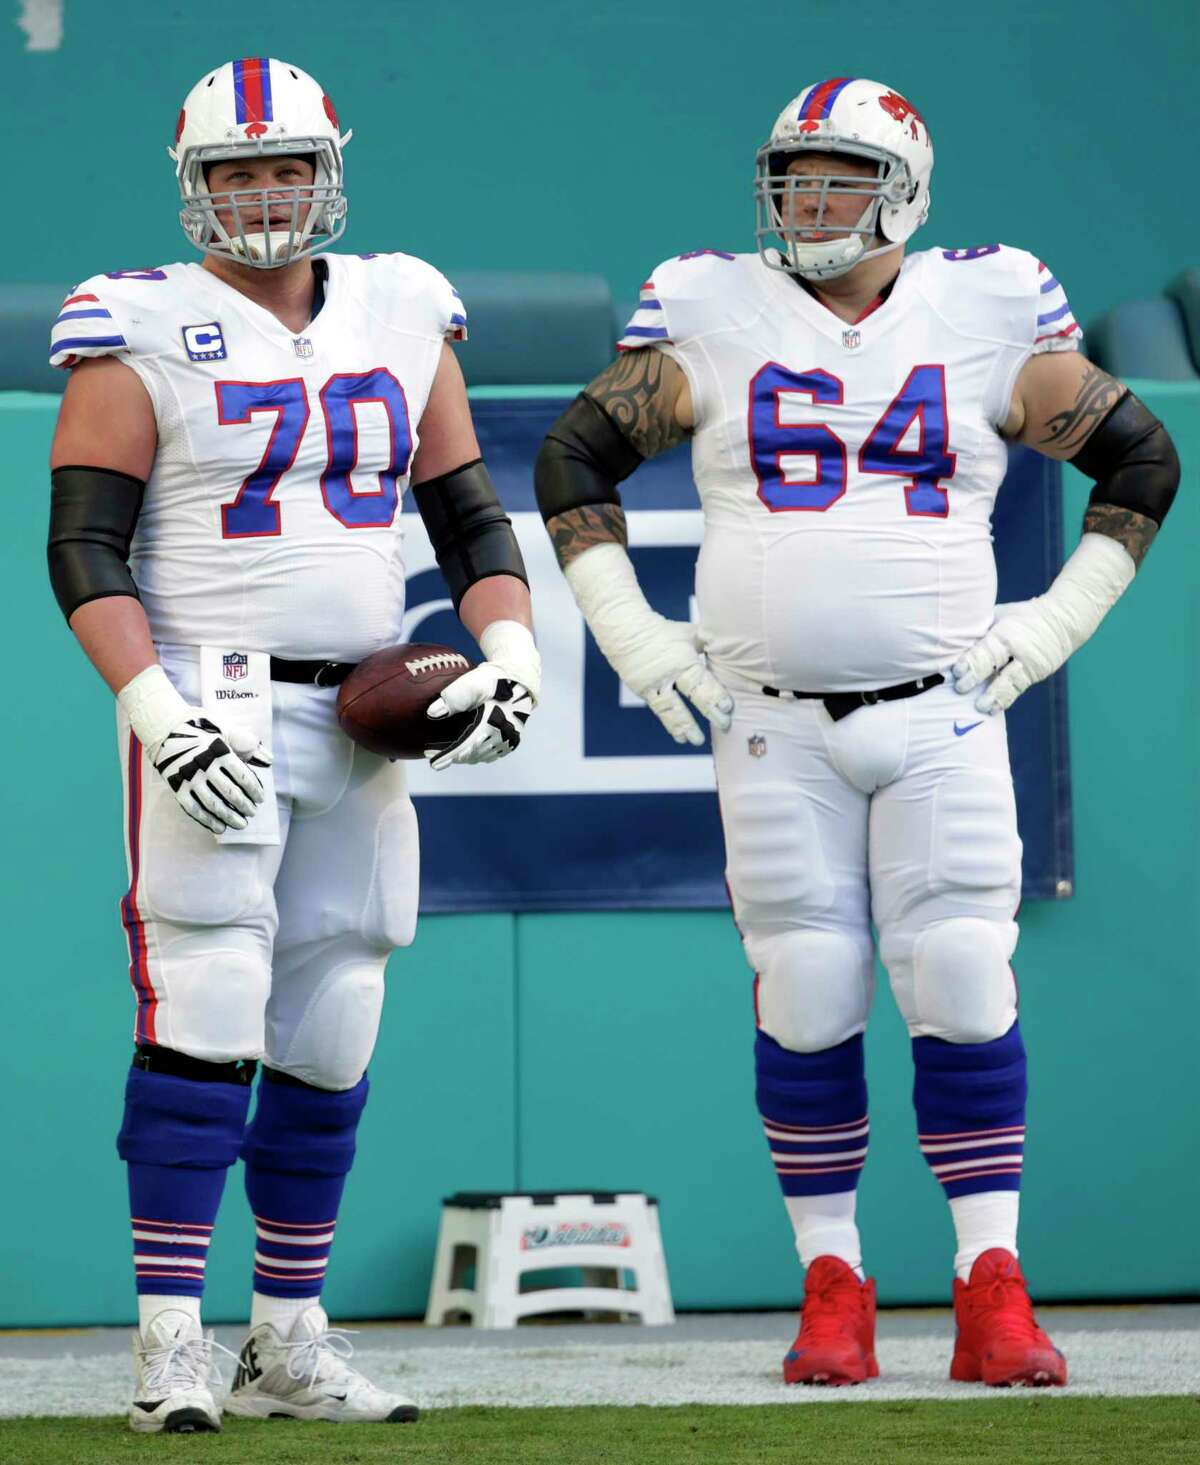 Buffalo Bills center Eric Wood (70) and offensive guard Richie Incognito (64), warm up before during the first half of an NFL football game against the Miami Dolphins, Sunday, Dec. 31, 2017, in Miami Gardens, Fla. (AP Photo/Lynne Sladky)